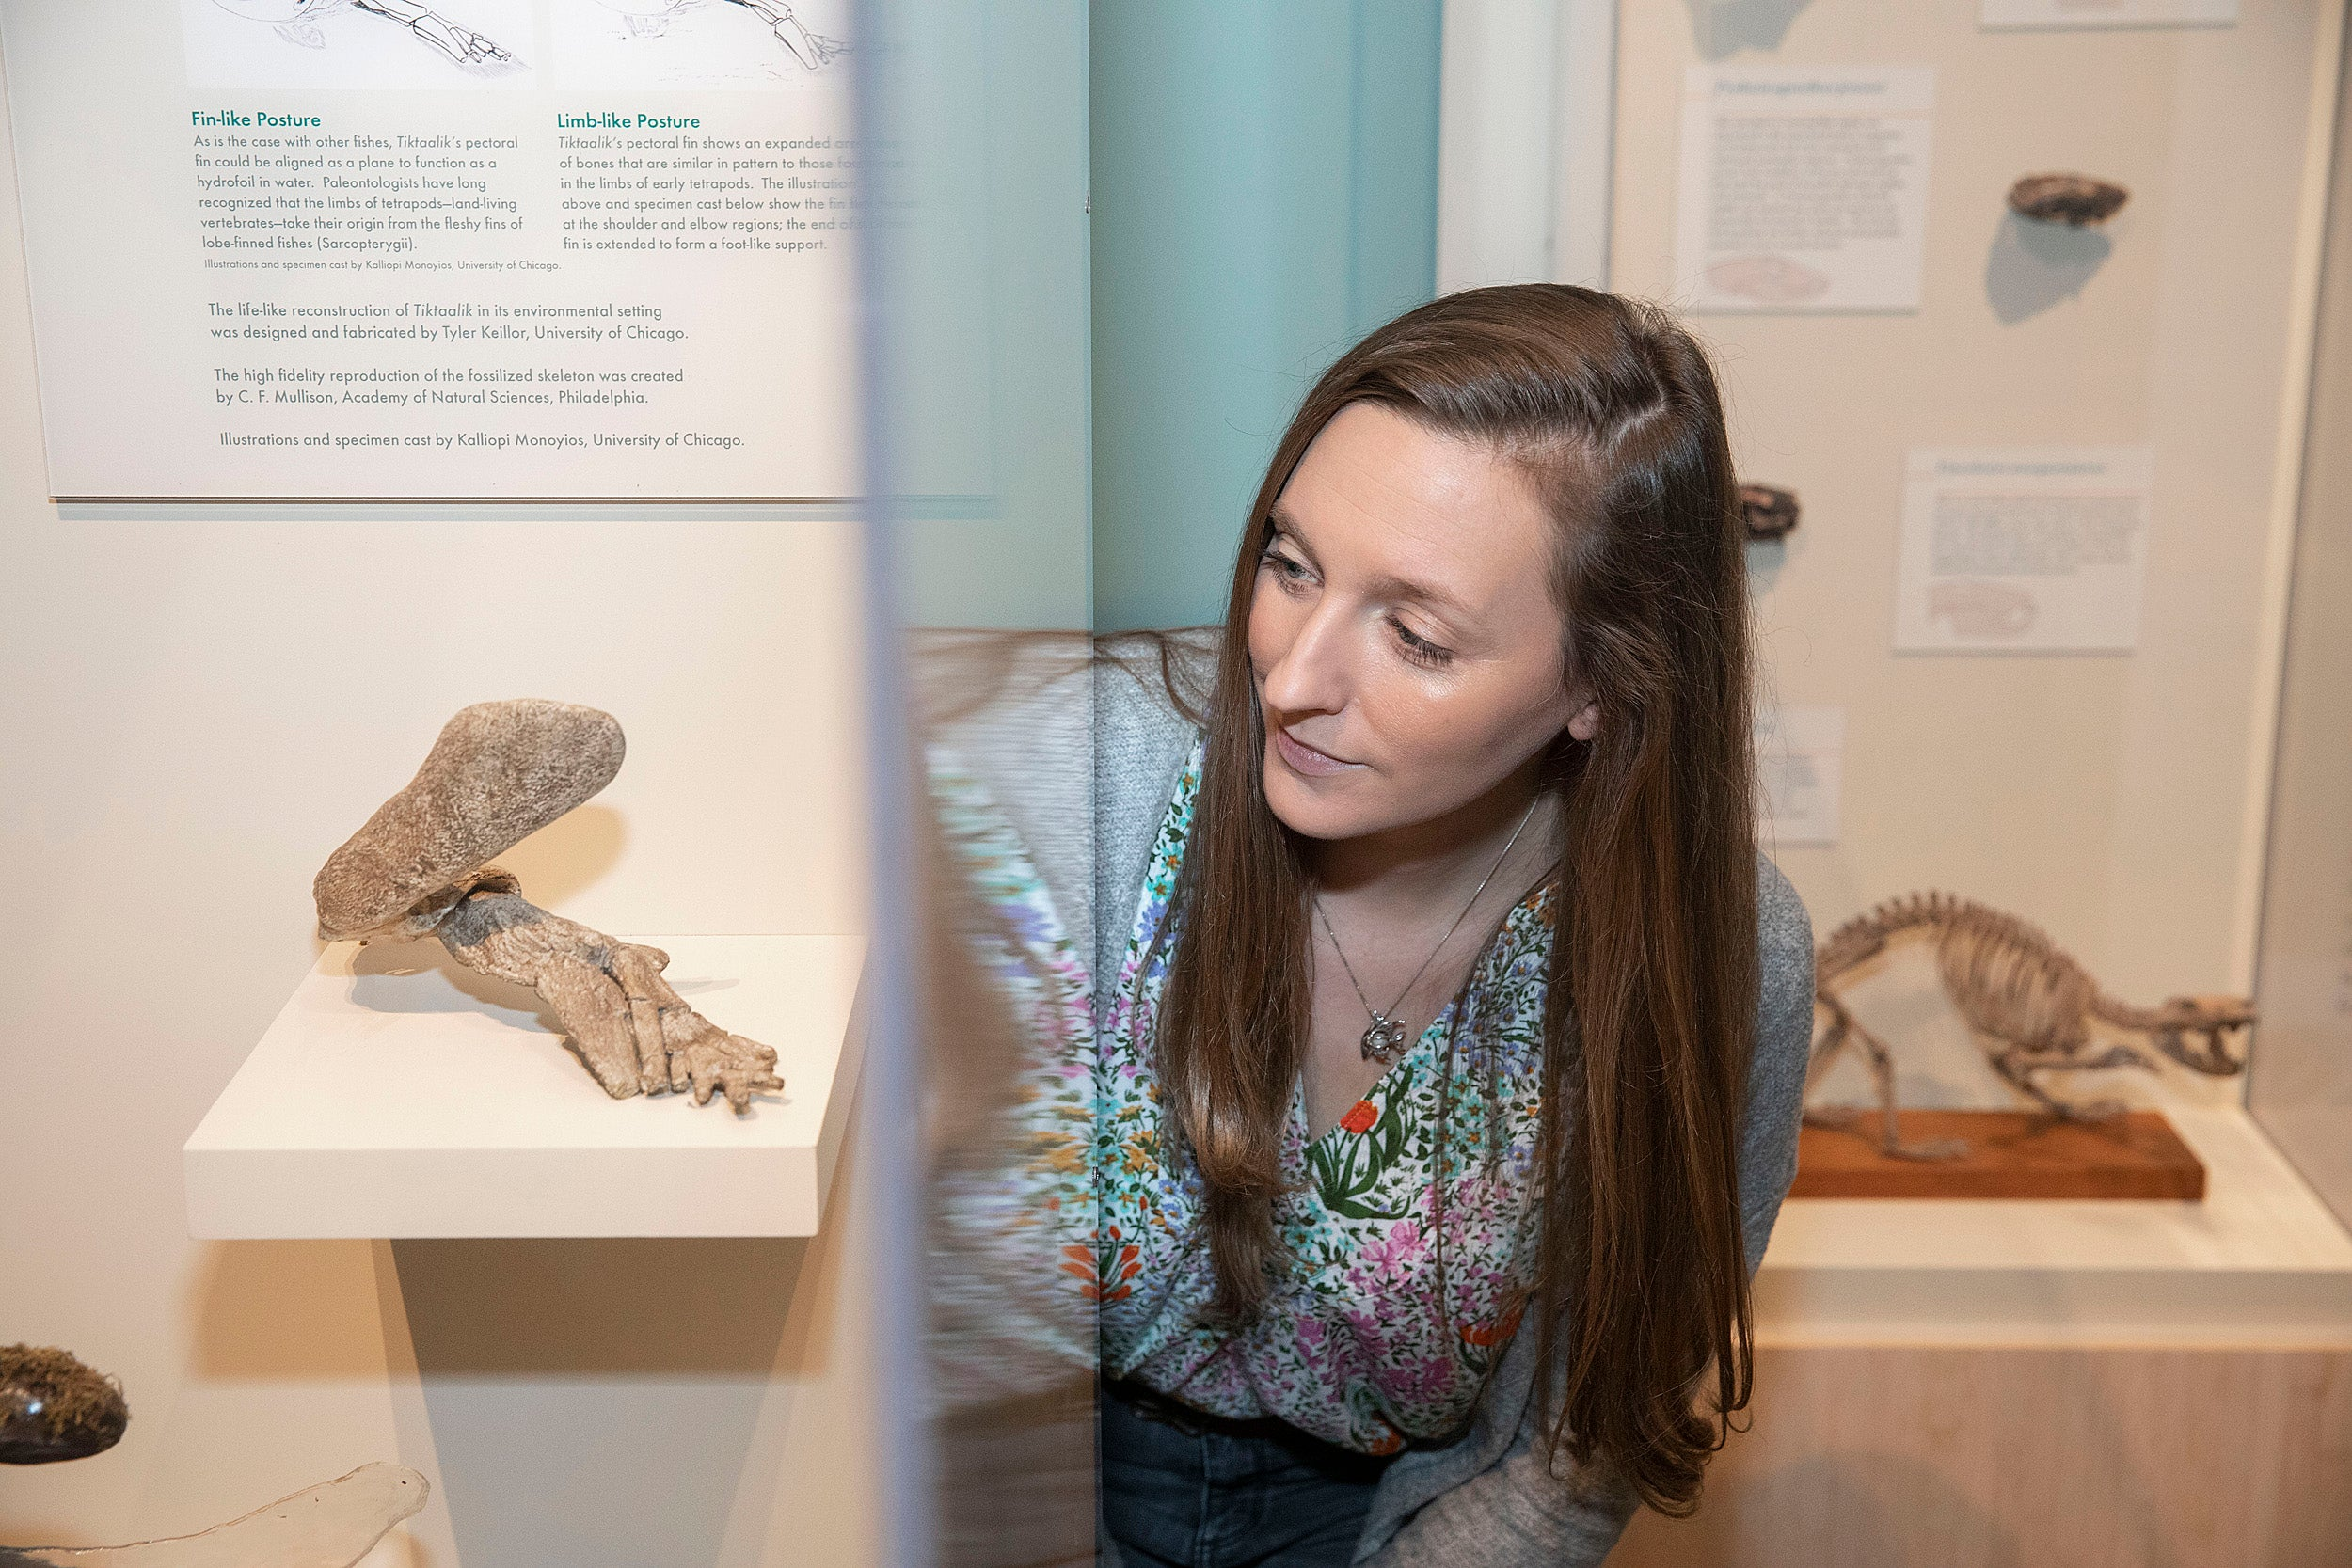 Stephanie Pierce explores the collections of tetrapod fossils inside the Harvard Museum of Natural History.